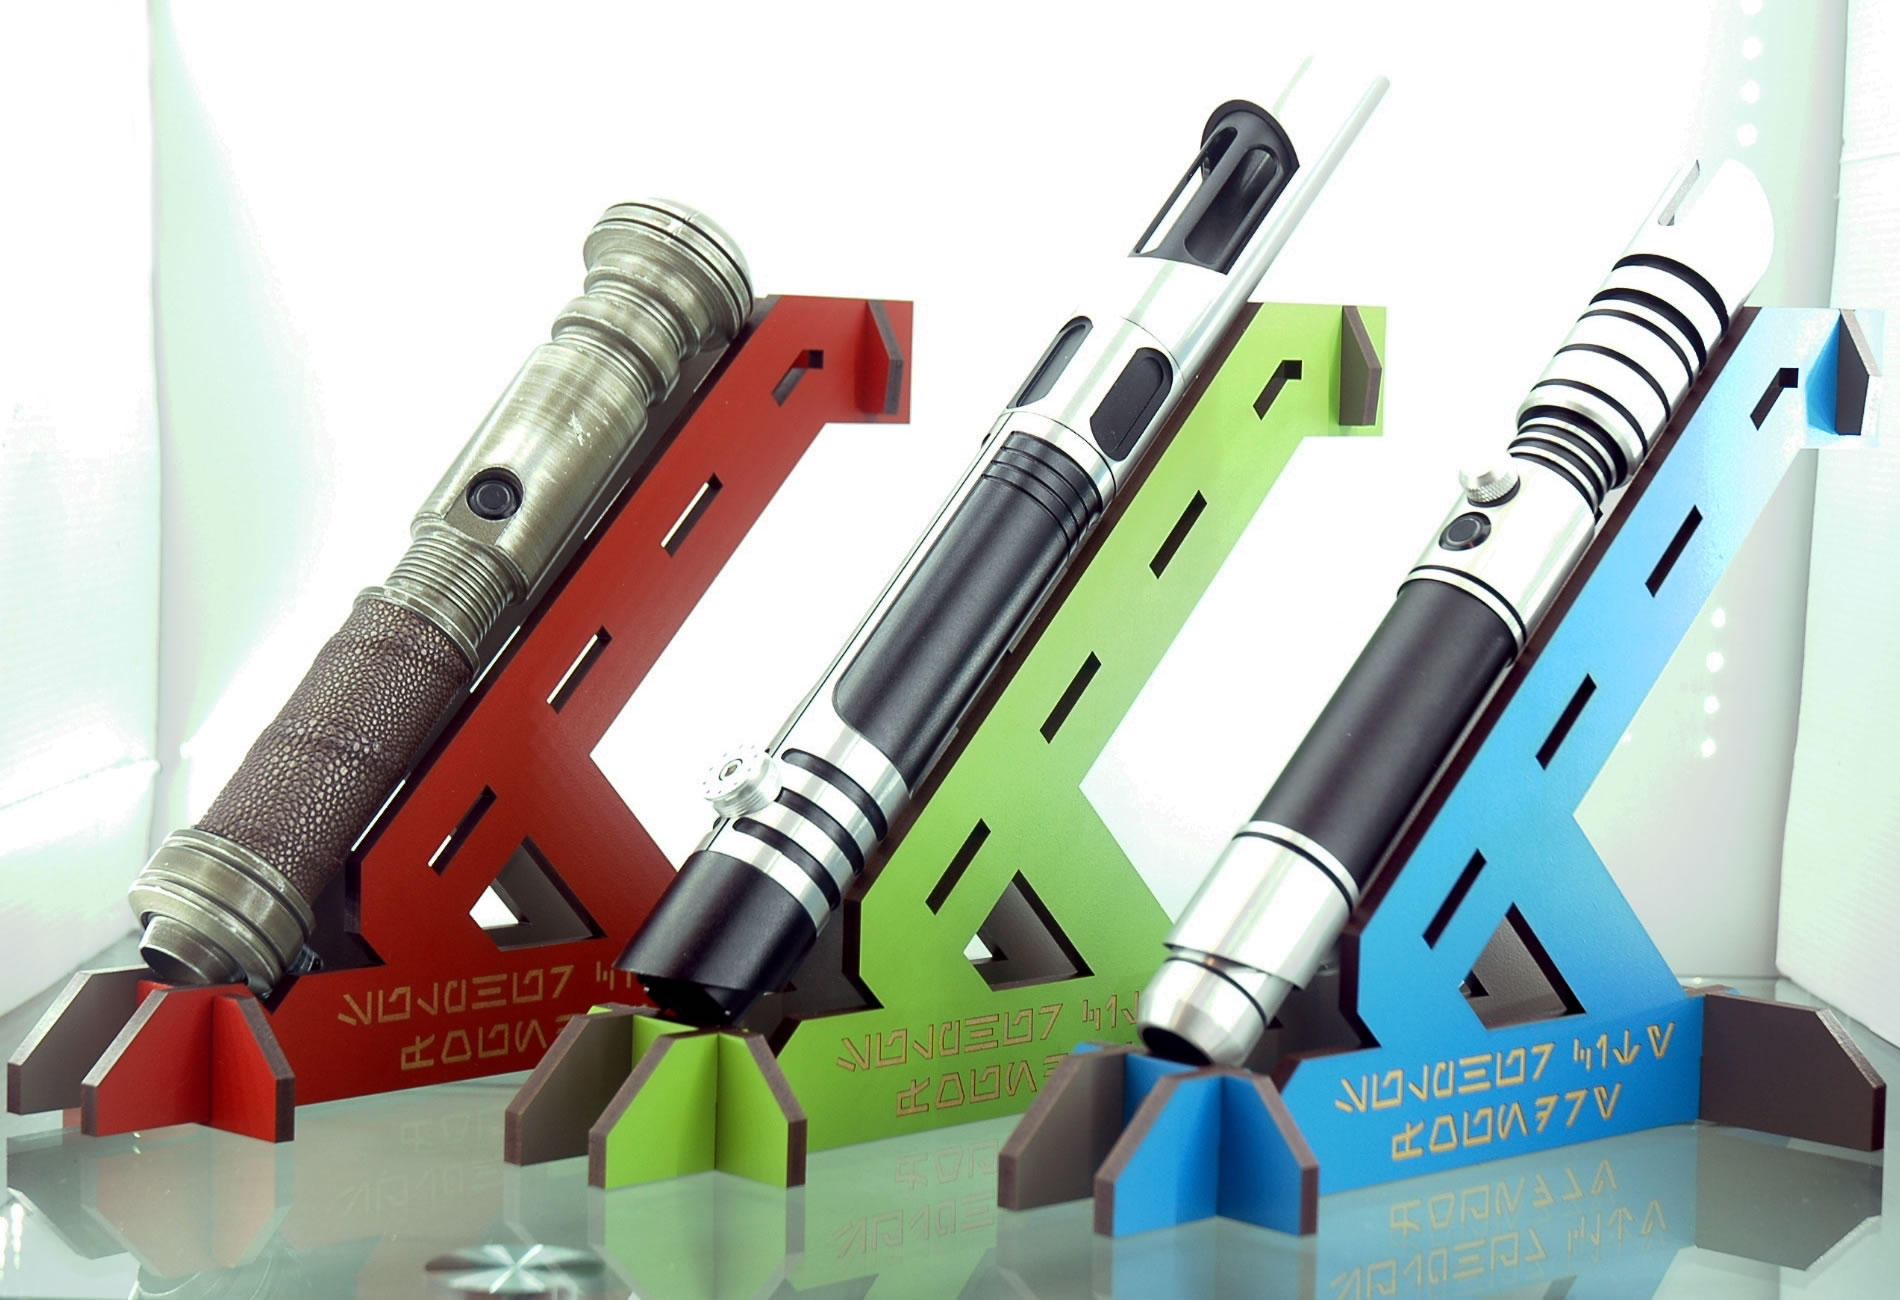 New Colour Range of Lightsaber Stands